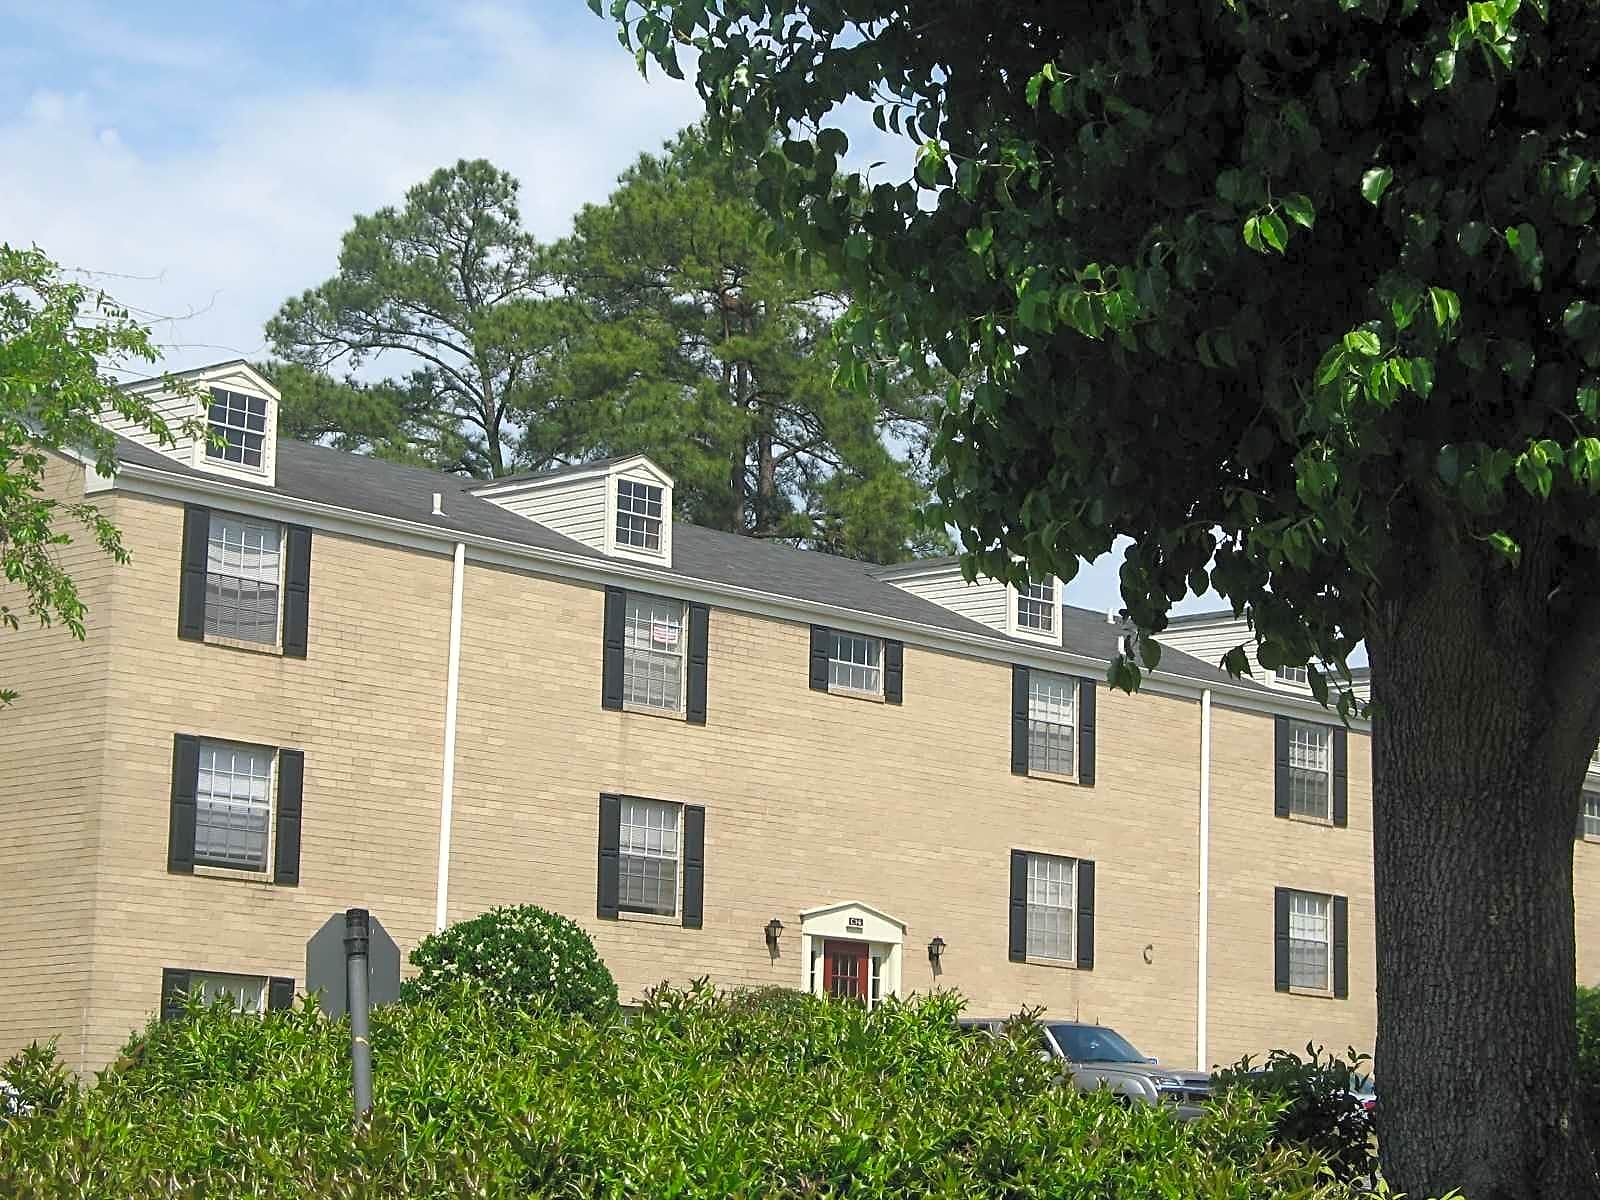 Awesome augusta ga houses for rent apartments page 4 for Builders plan service augusta ga